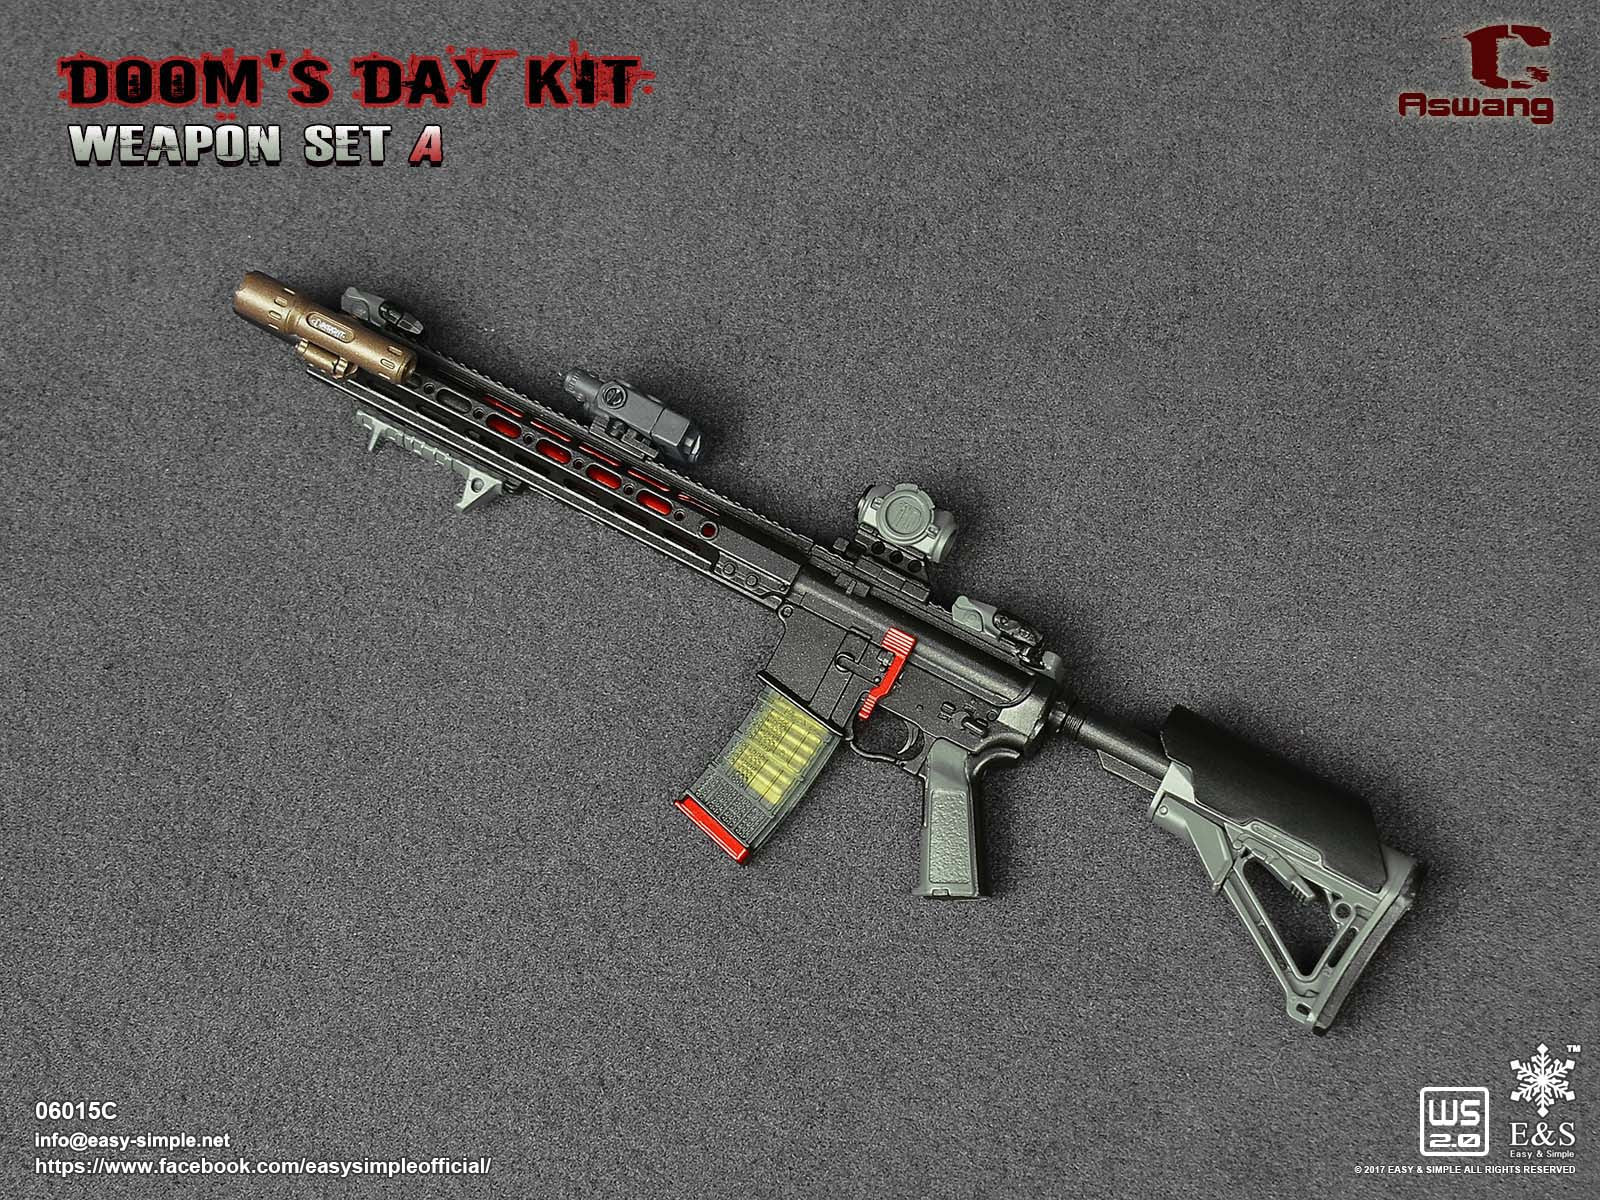 PREORDER E&S Doom's Day Kit Weapon Set ASWANG Rifle Mint in Box